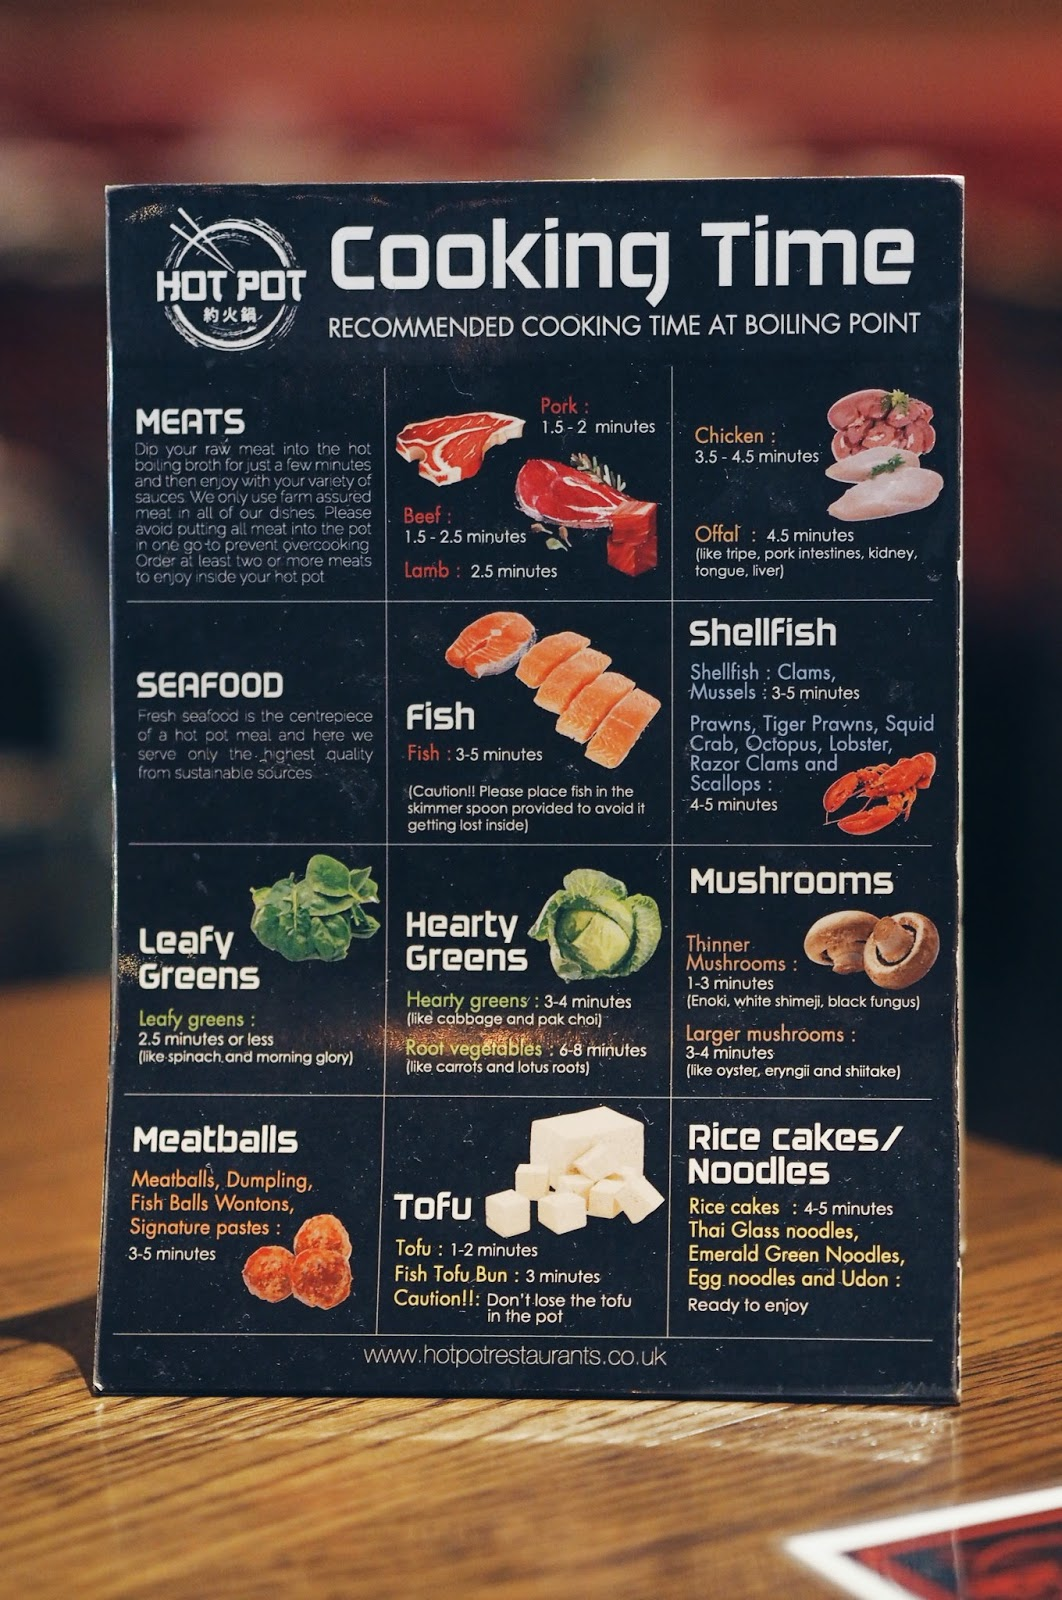 Menu with instructions for hotpot